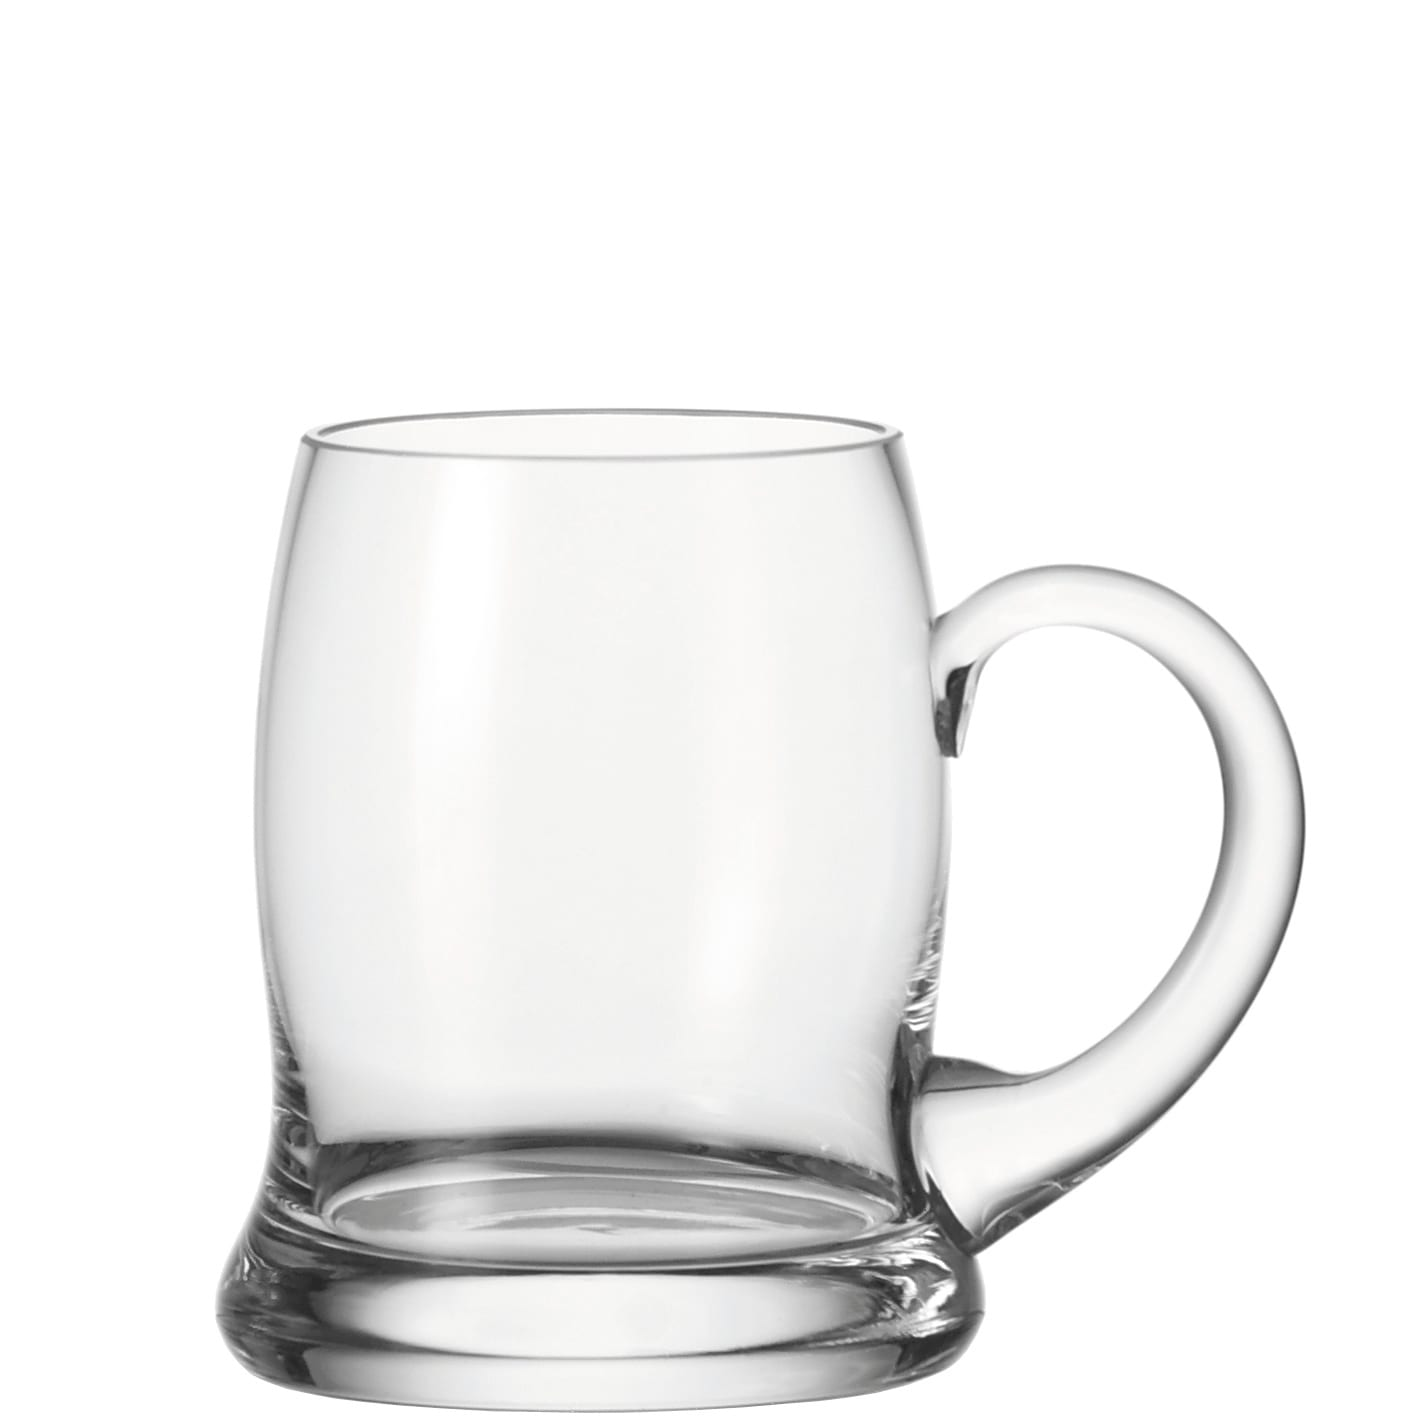 Leonardo  Brauhaus Glass Beer Mug